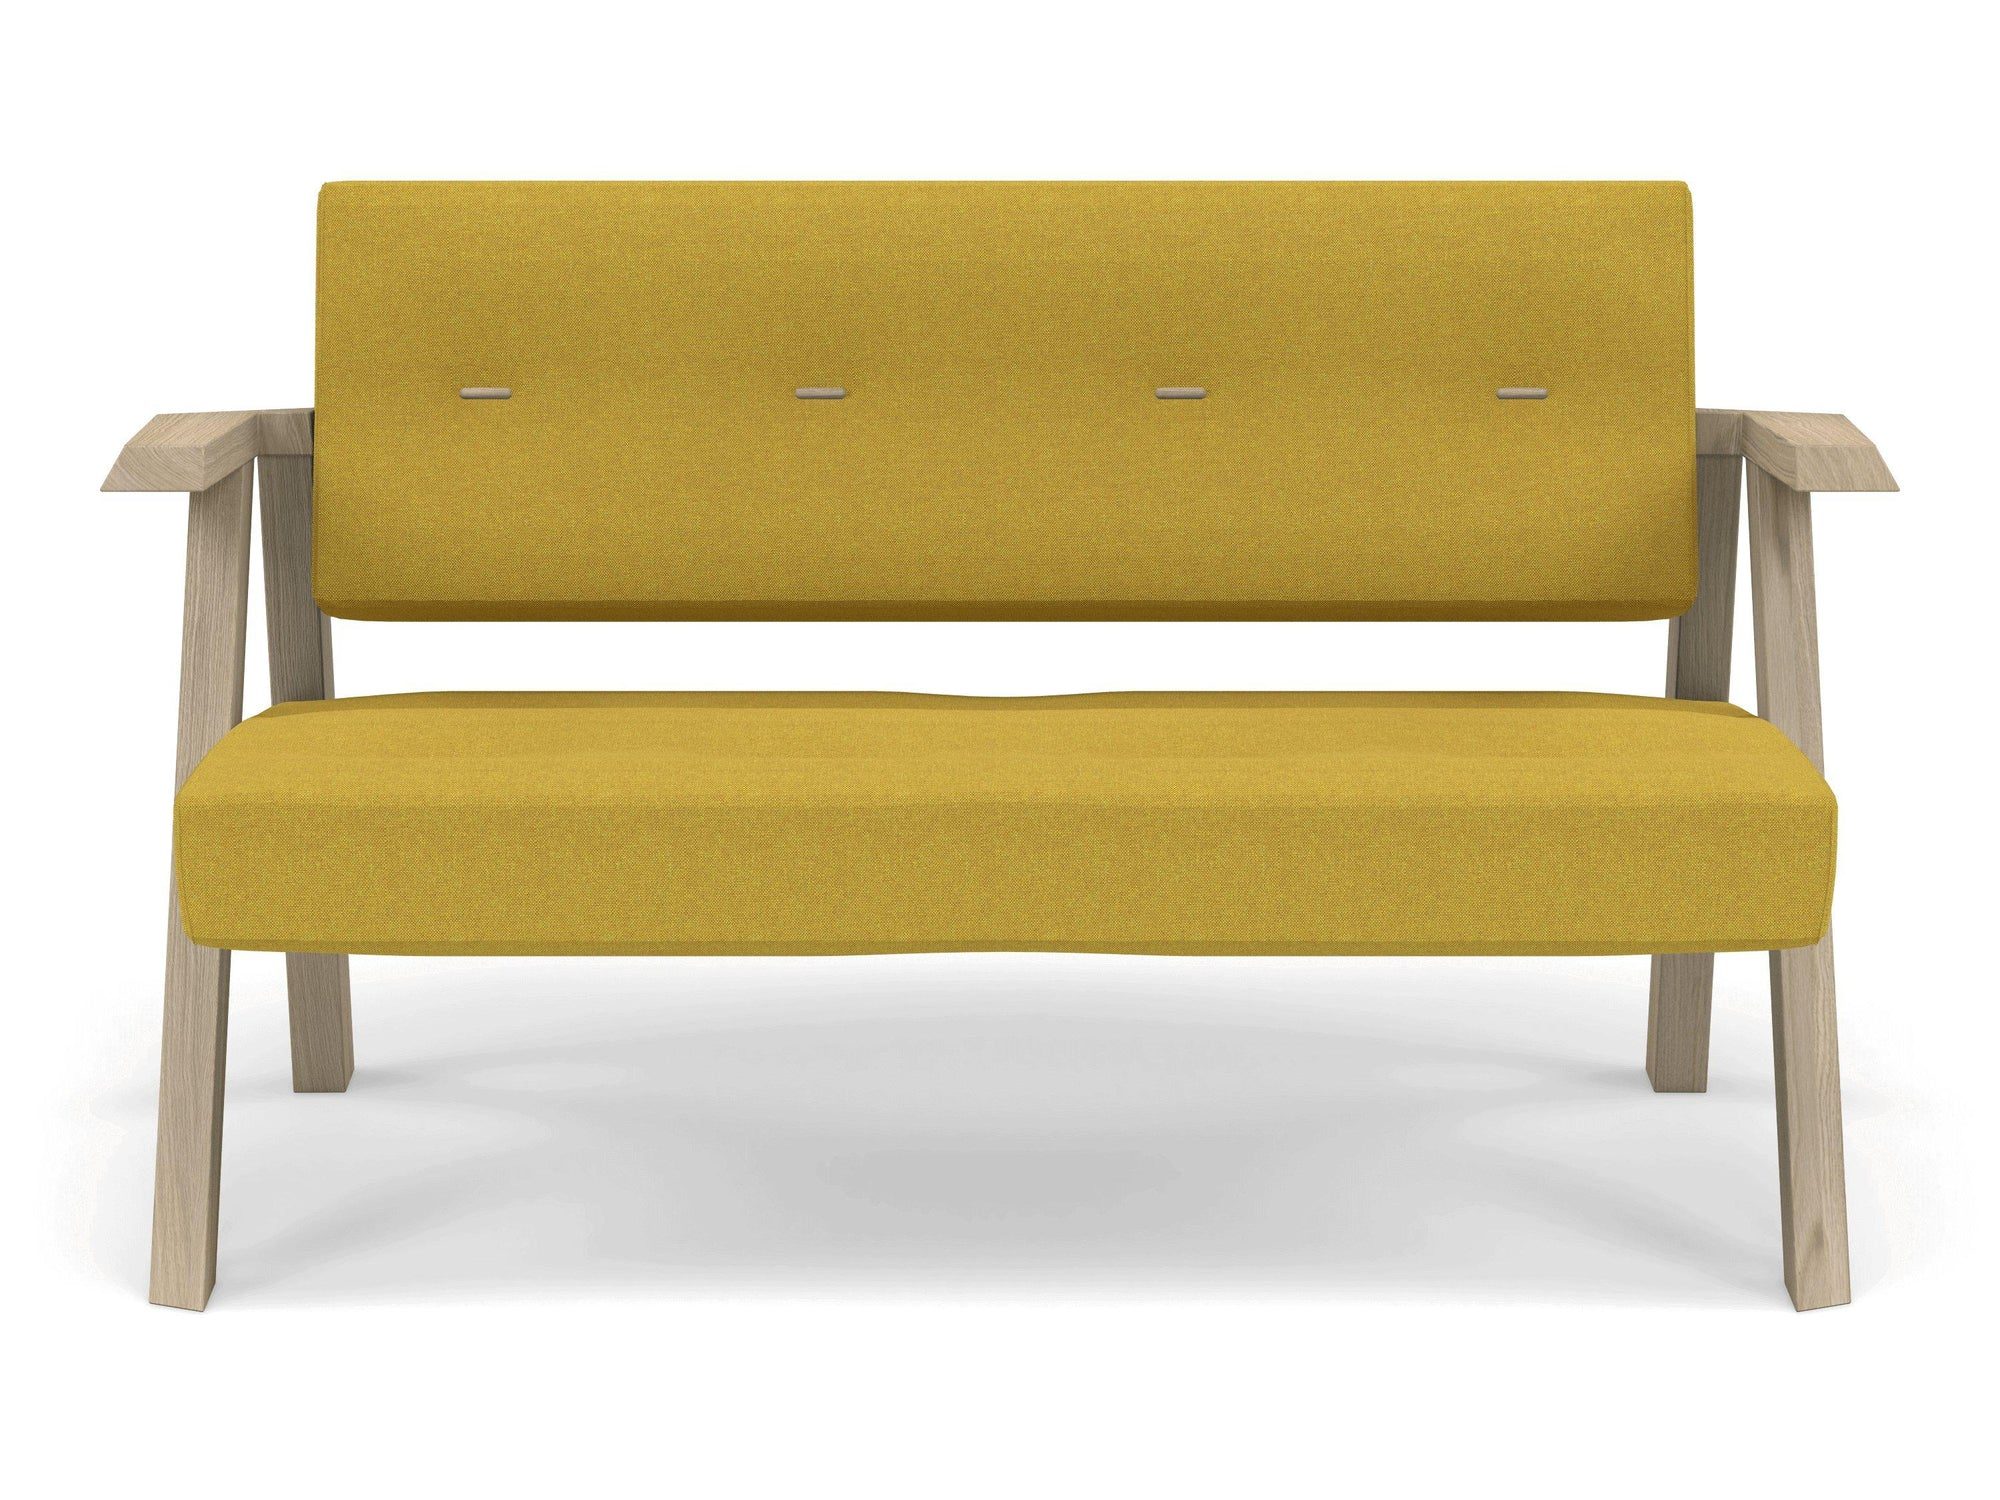 Classic Mid-century Design 2 Seater Sofa Armchair with Buttons in Mustard Yellow Fabric-Natural Oak-Distinct Designs (London) Ltd